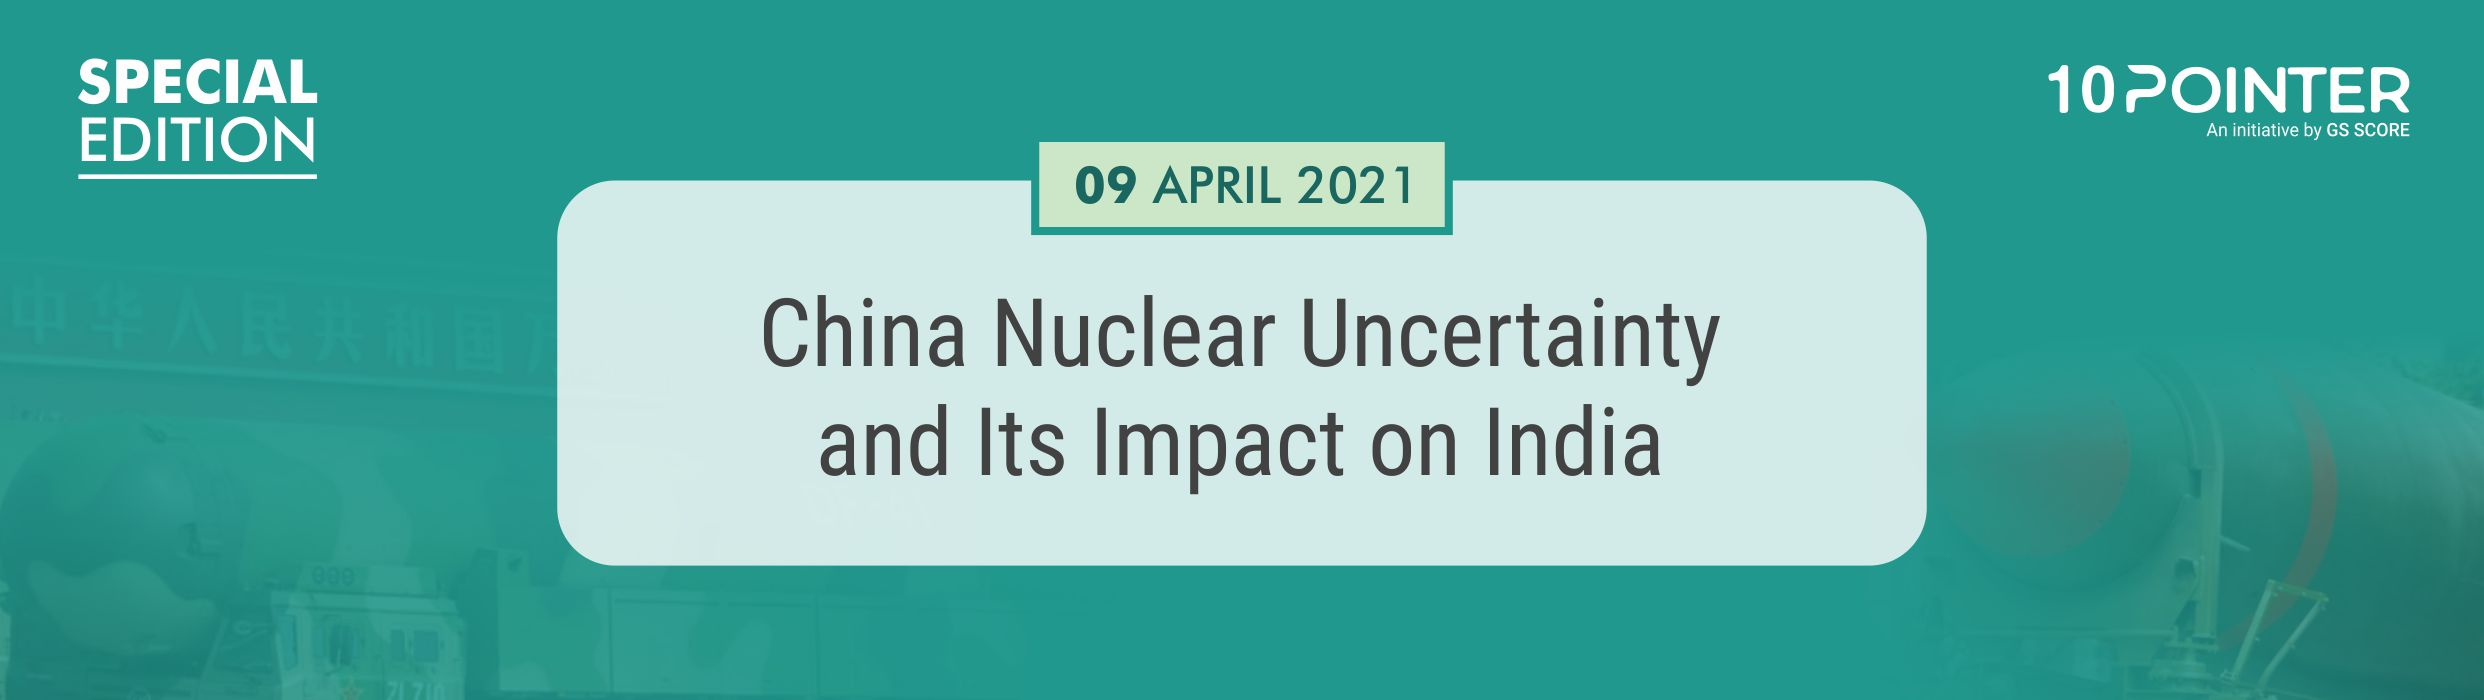 China Nuclear Uncertainty and Its Impact on India